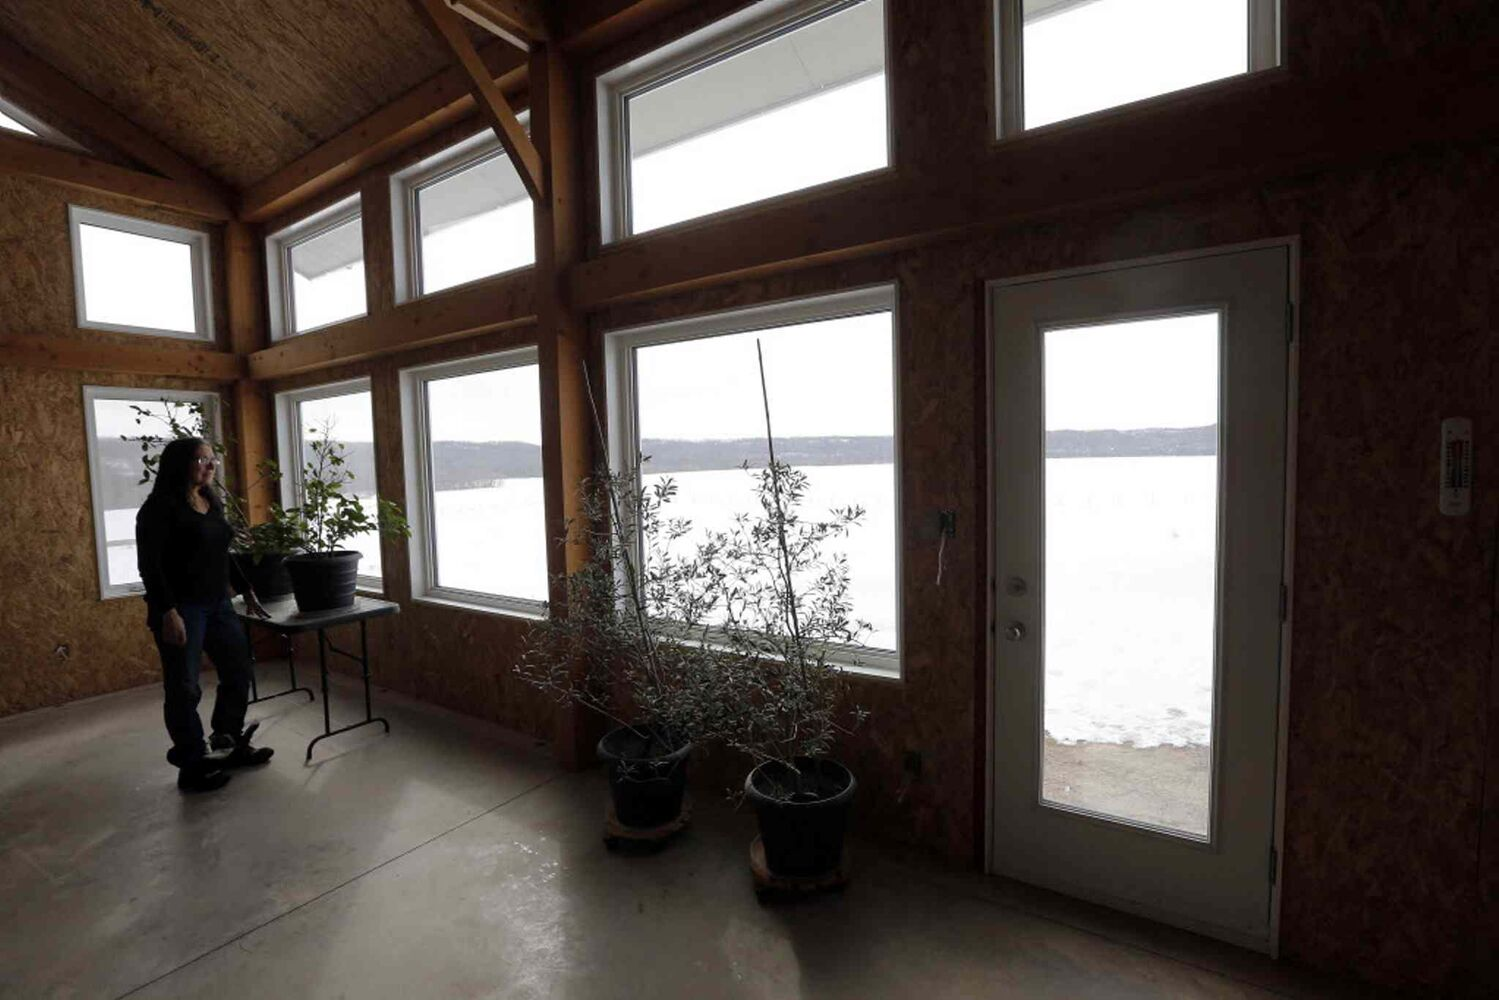 Bev Eert has a few plants growing in the unfinished house. There are lots of south-east facing windows looking out over their large lot on the Assiniboine River. (KEN GIGLIOTTI / WINNIPEG FREE PRESS)